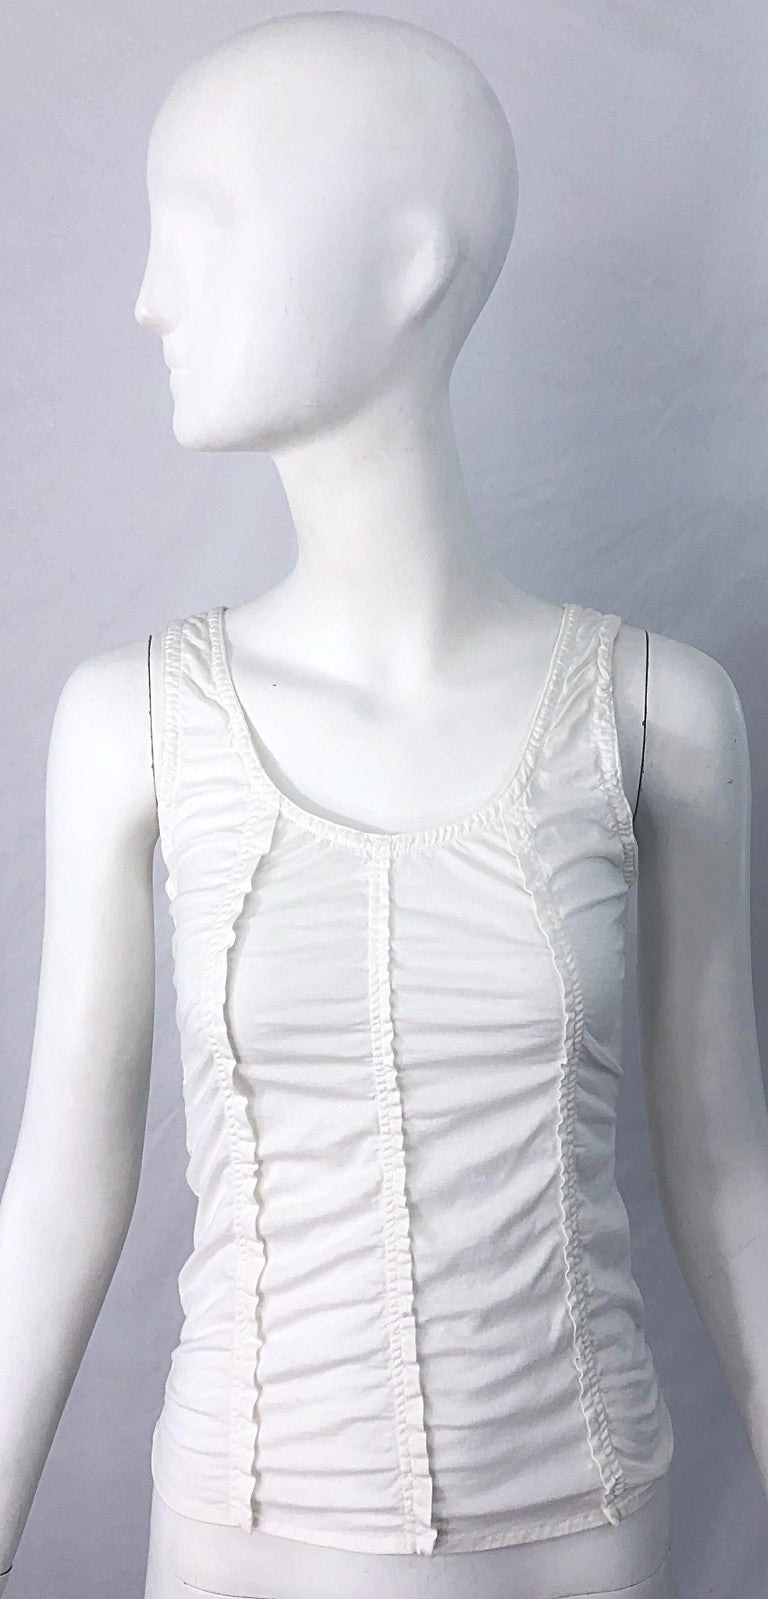 The perfect white tank! TOM FORD for YVES SAINT LAURENT white cotton sleeveless tank top shirt ! Features flattering vertical rows of ruffles down the front and back. Simply slips over the head, and stretches to fit. Can easily be dressed up or